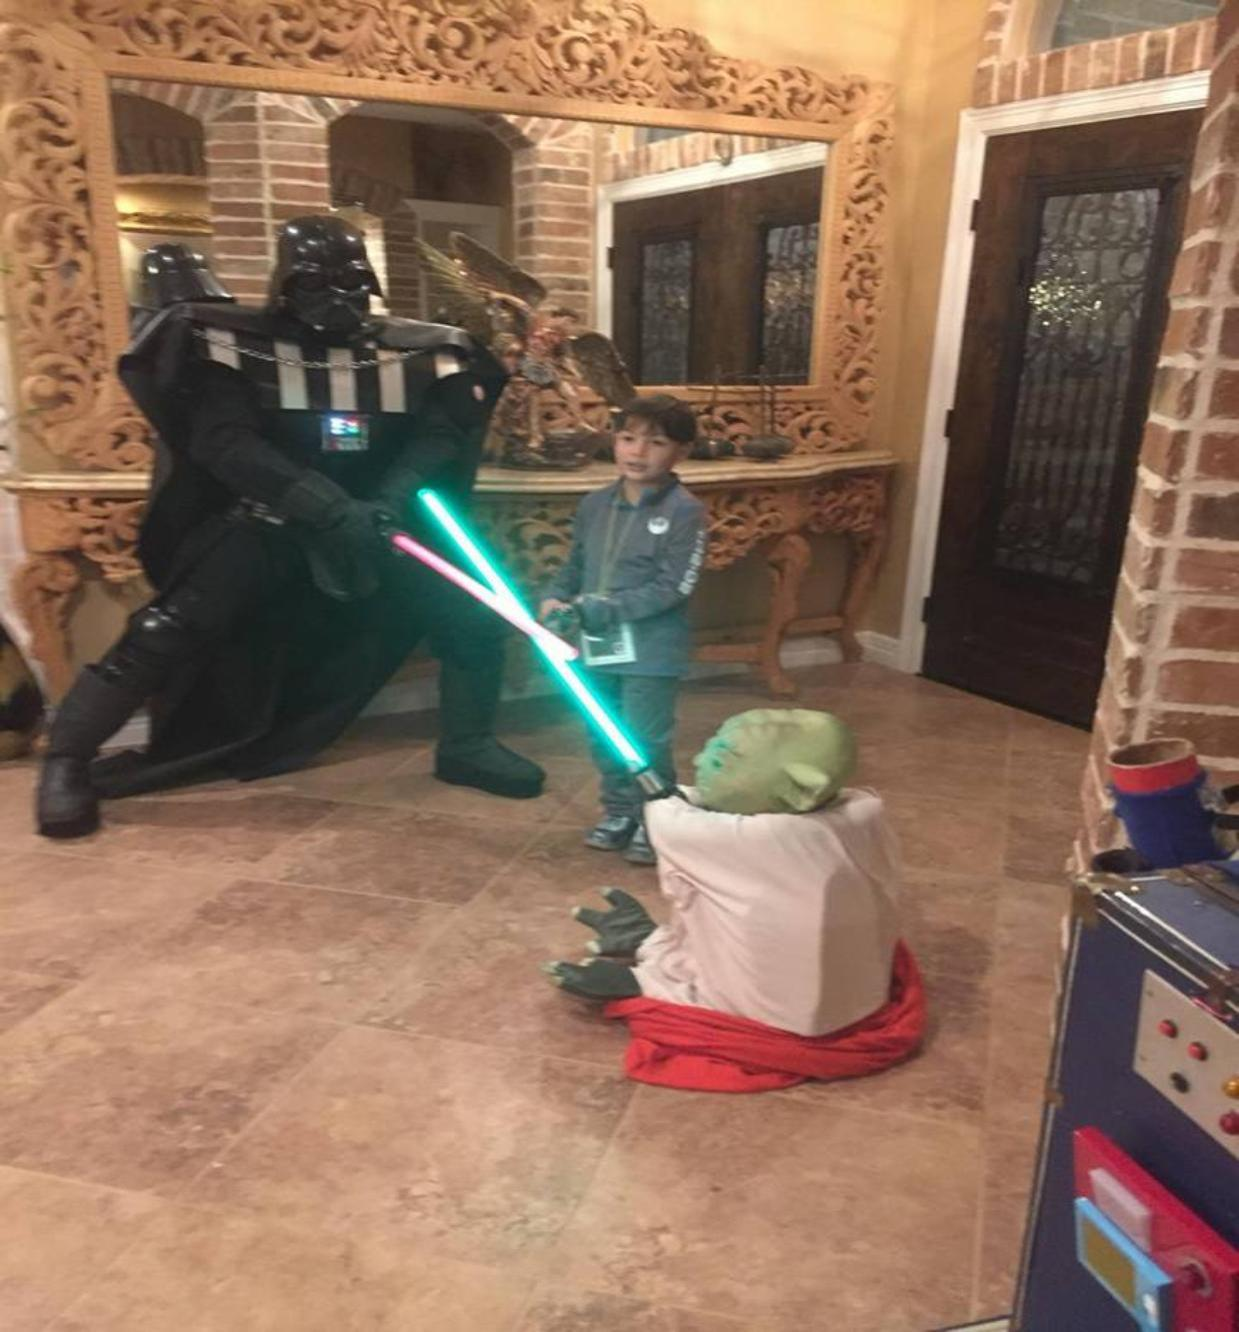 Darth vader rental battles the yoda prop for a super hero birthday party in Houston, Texas.